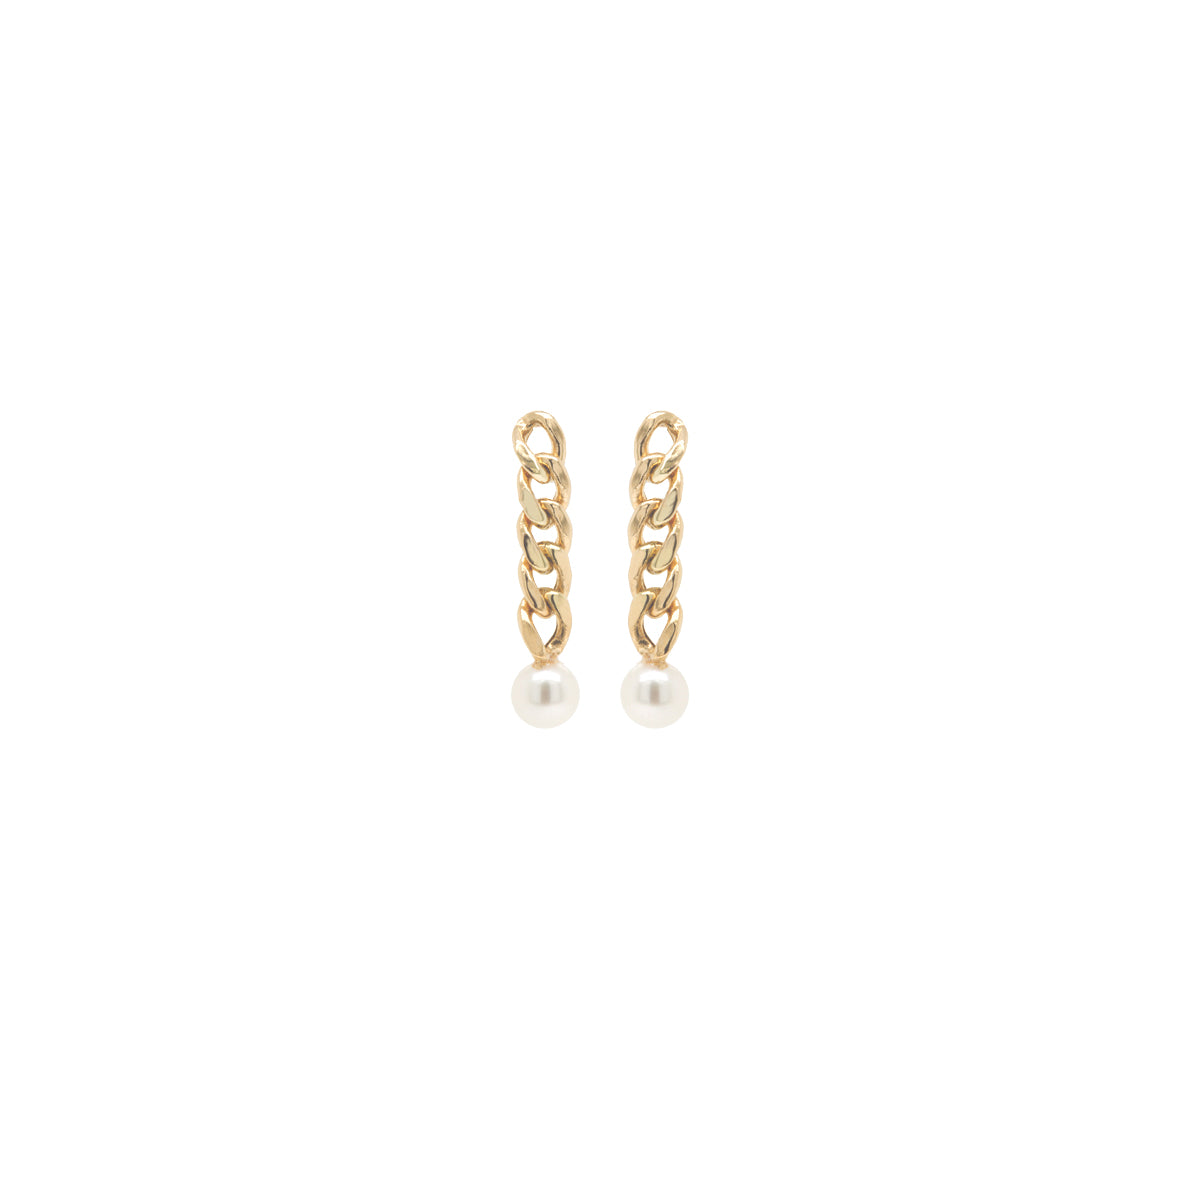 14k small curb chain drop earrings with tiny pearls